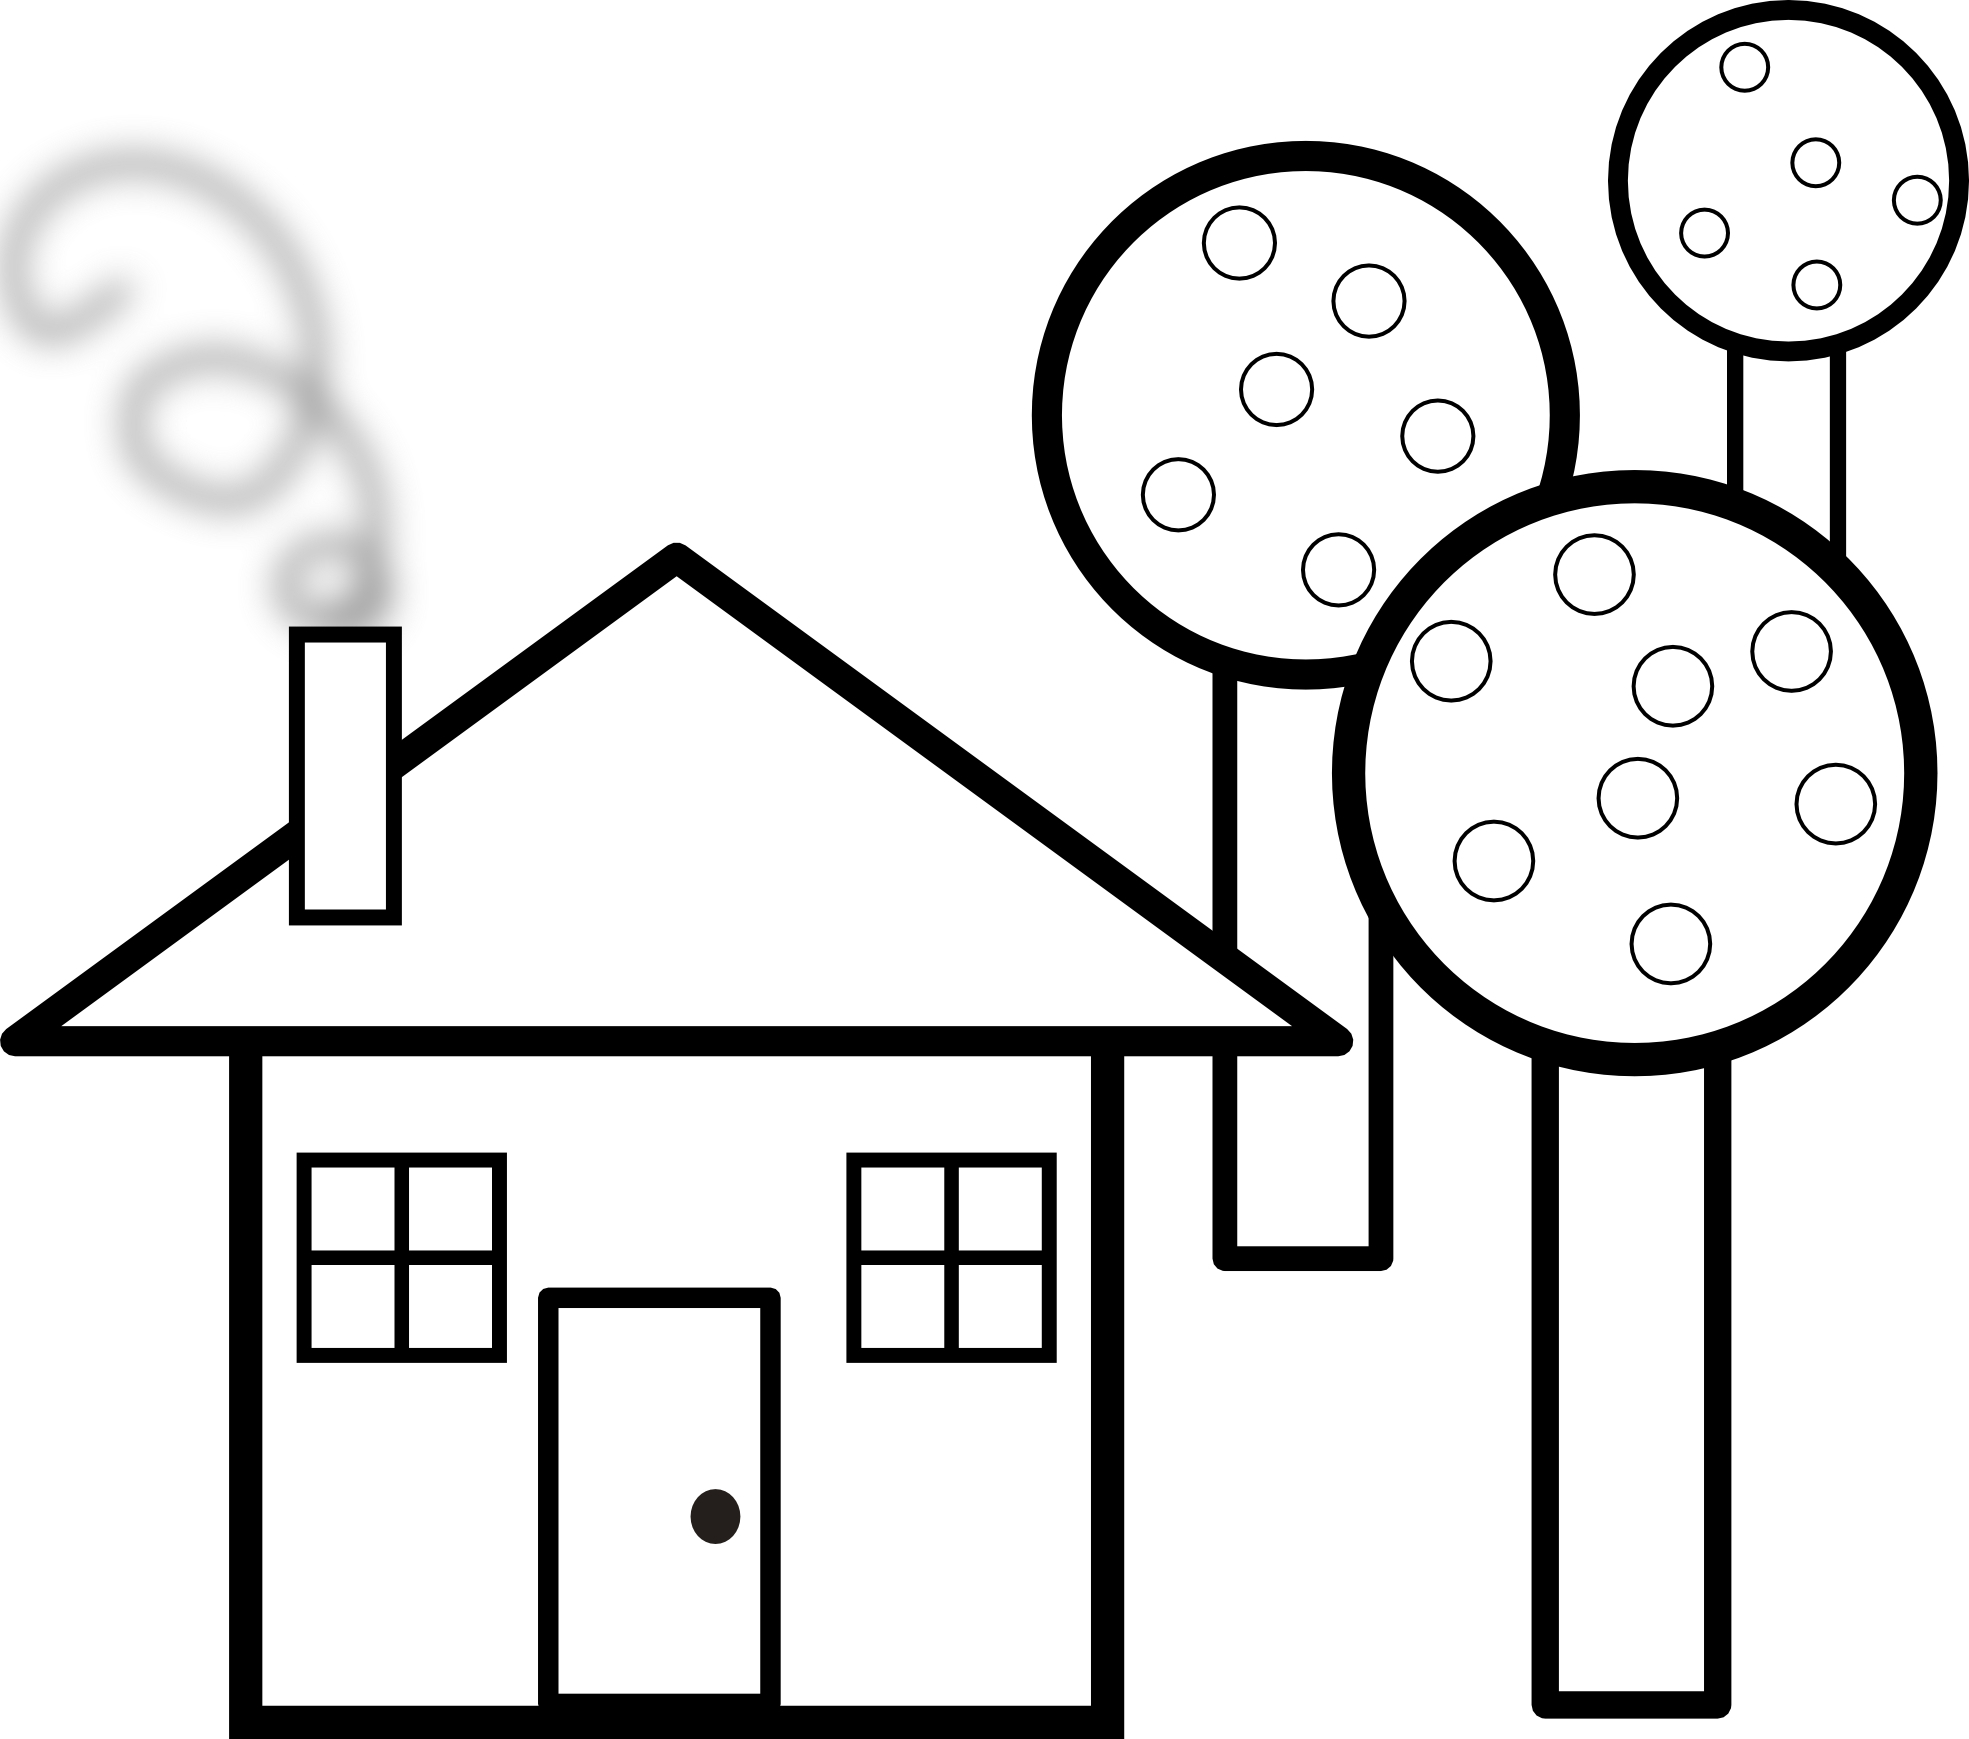 house drawing black and white at getdrawings com free for personal rh getdrawings com dog house clipart black and white house clipart black and white free